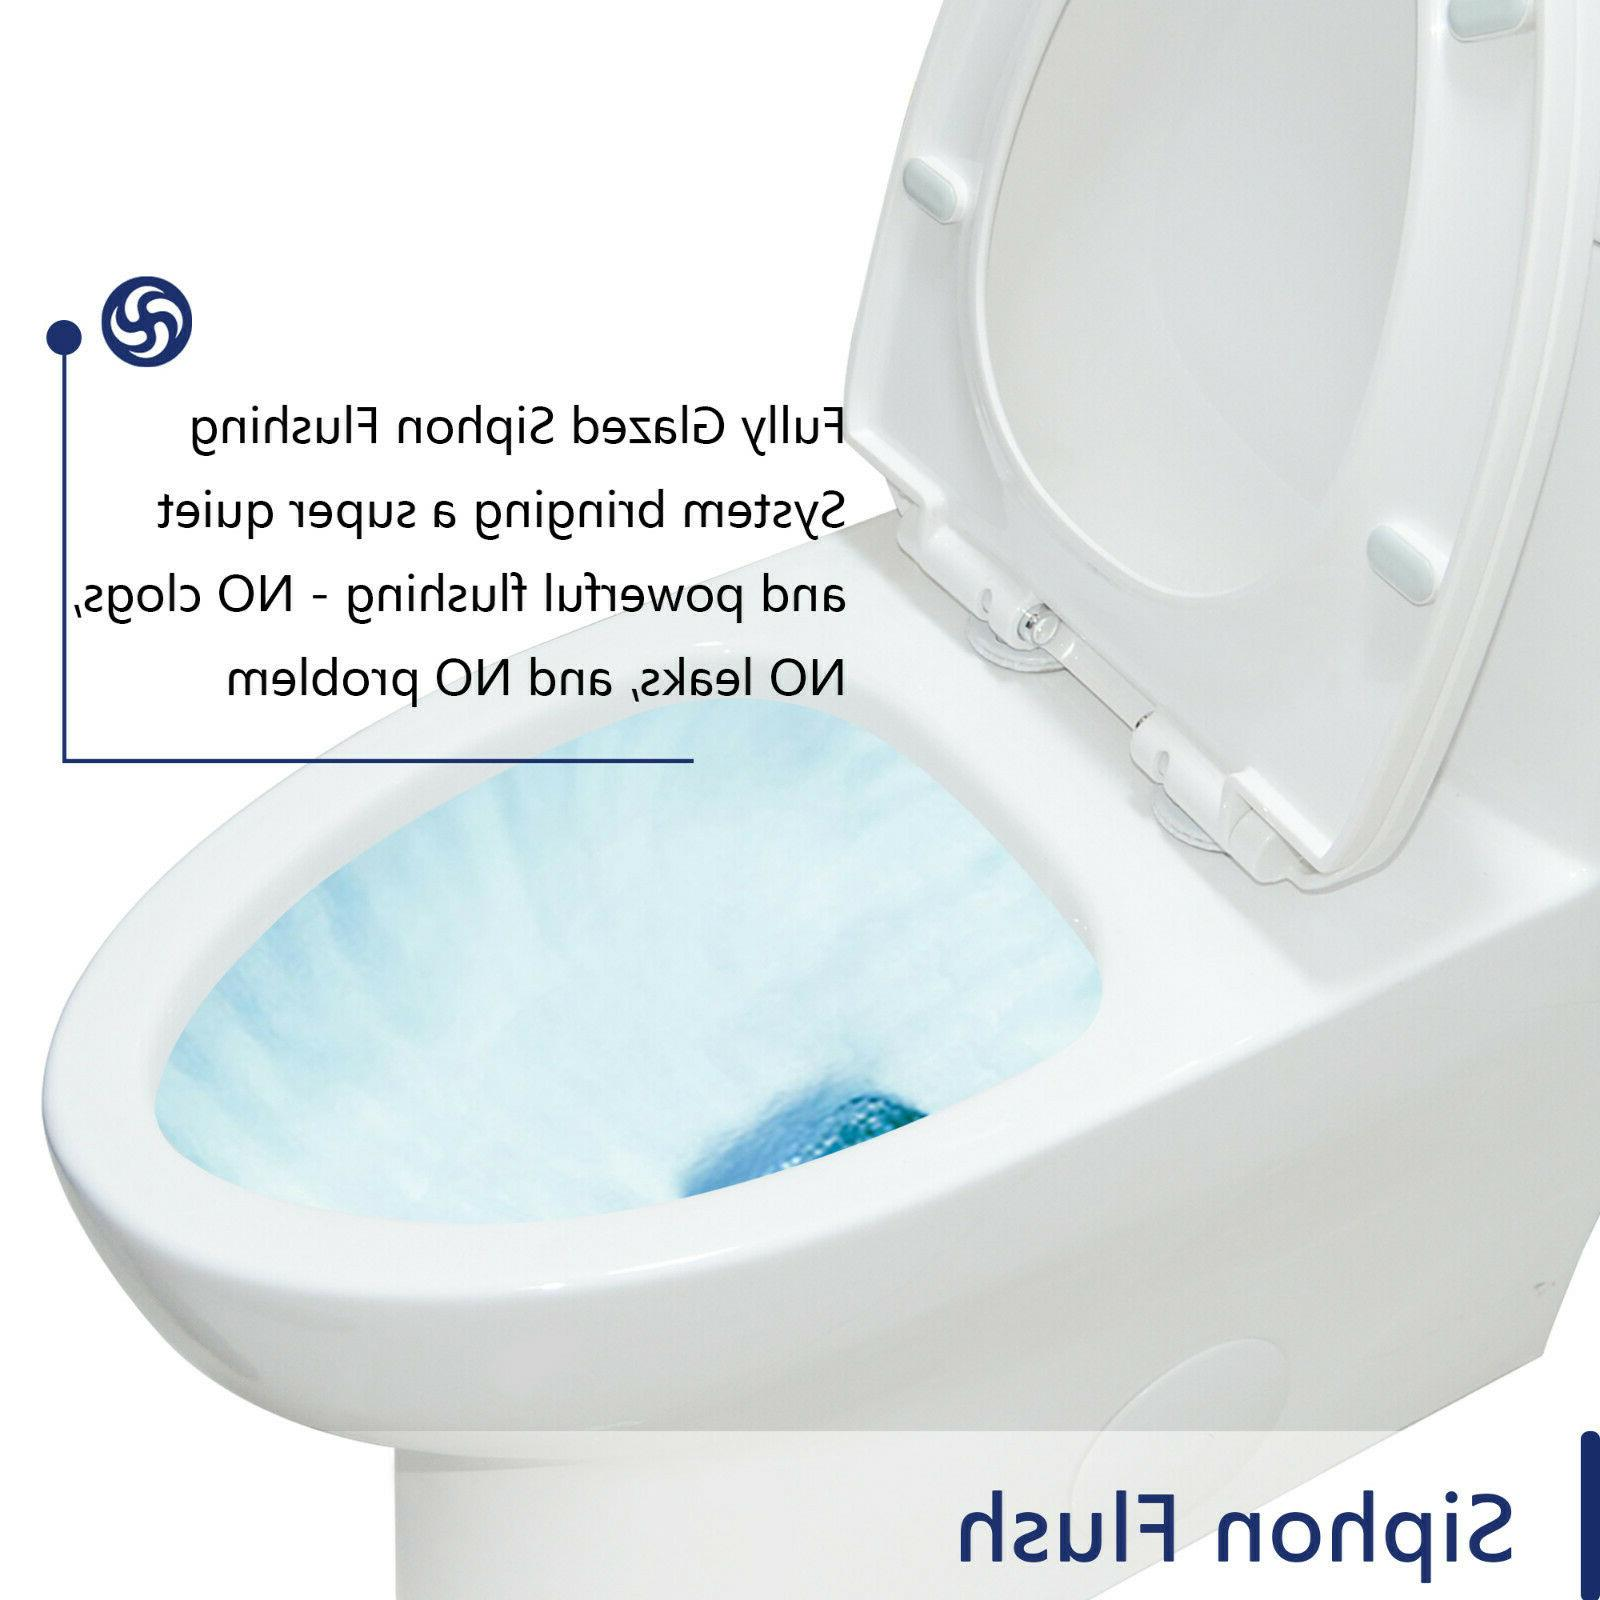 DeerValley Elongated One-Piece Porcelain Toilet w/ Closing